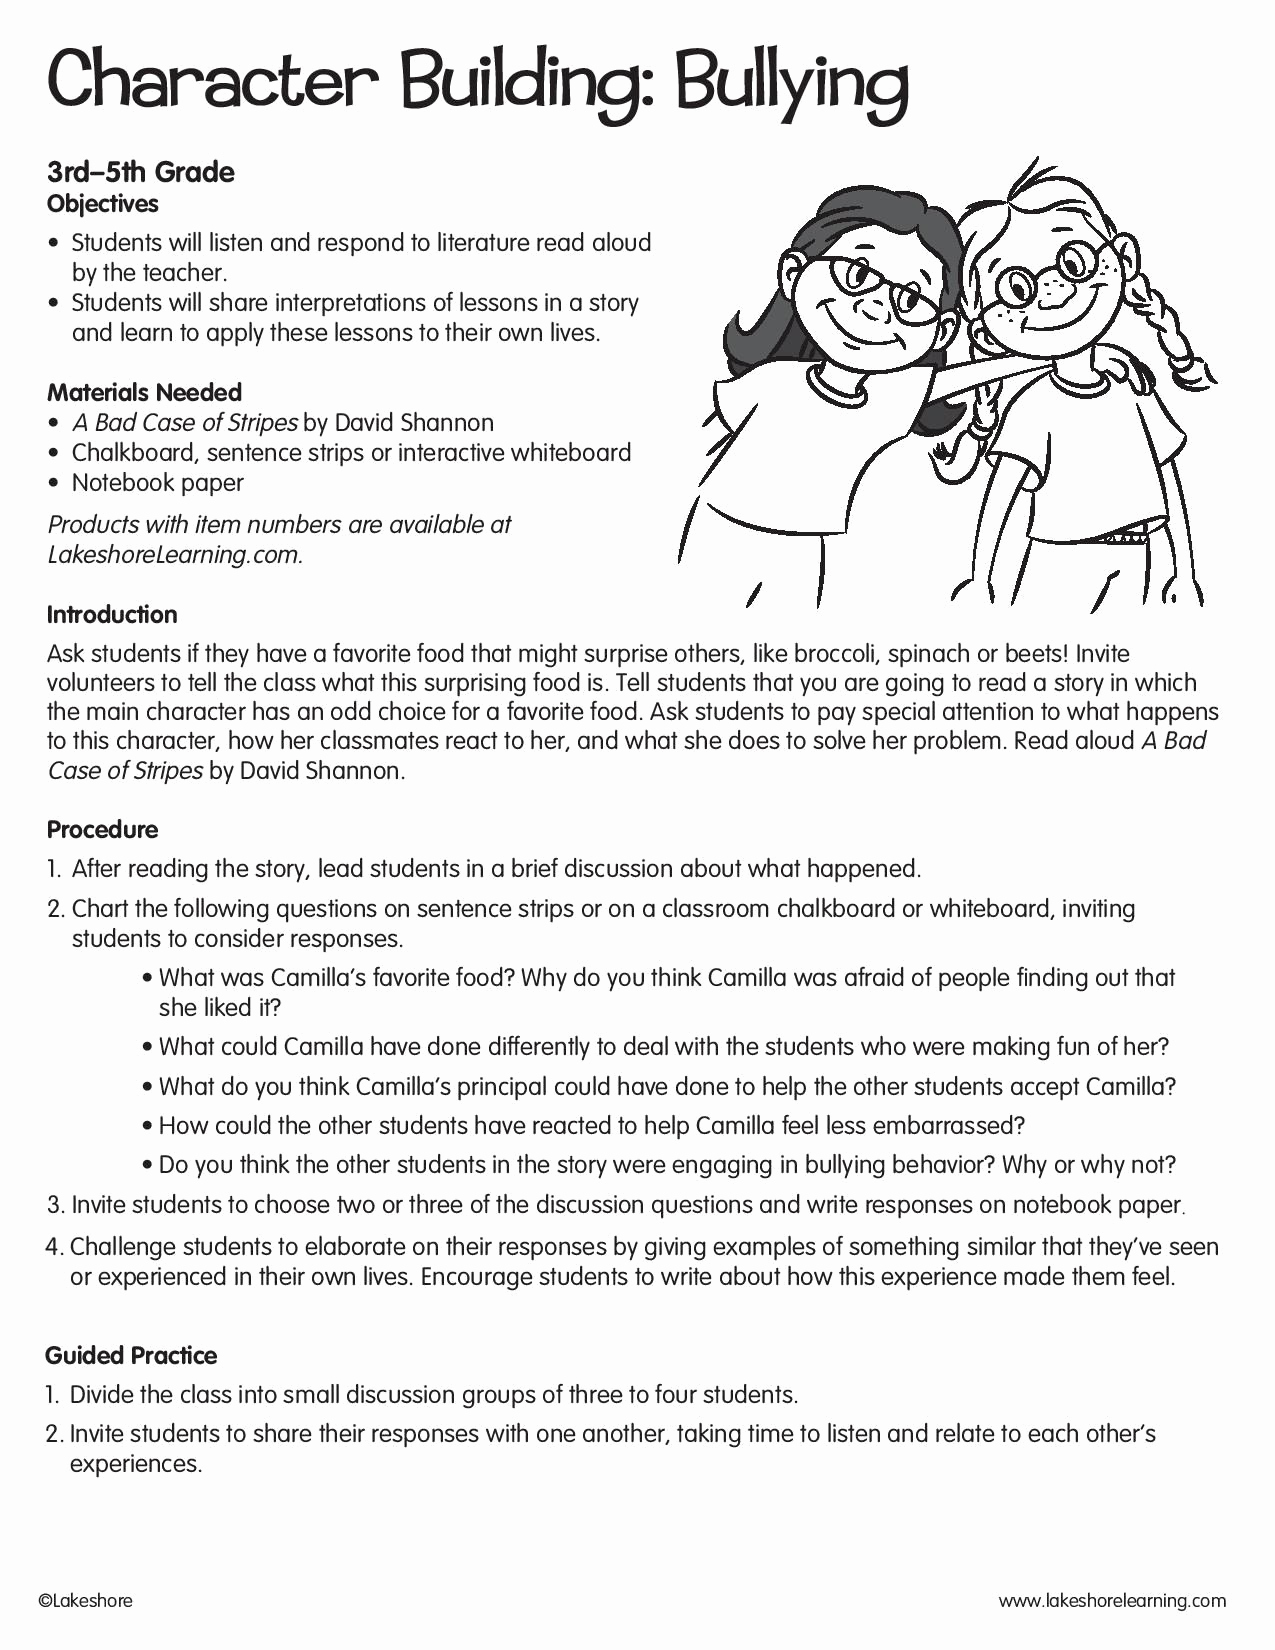 Printable Bullying Worksheets Lovely Character Building Bullying Lessonplan